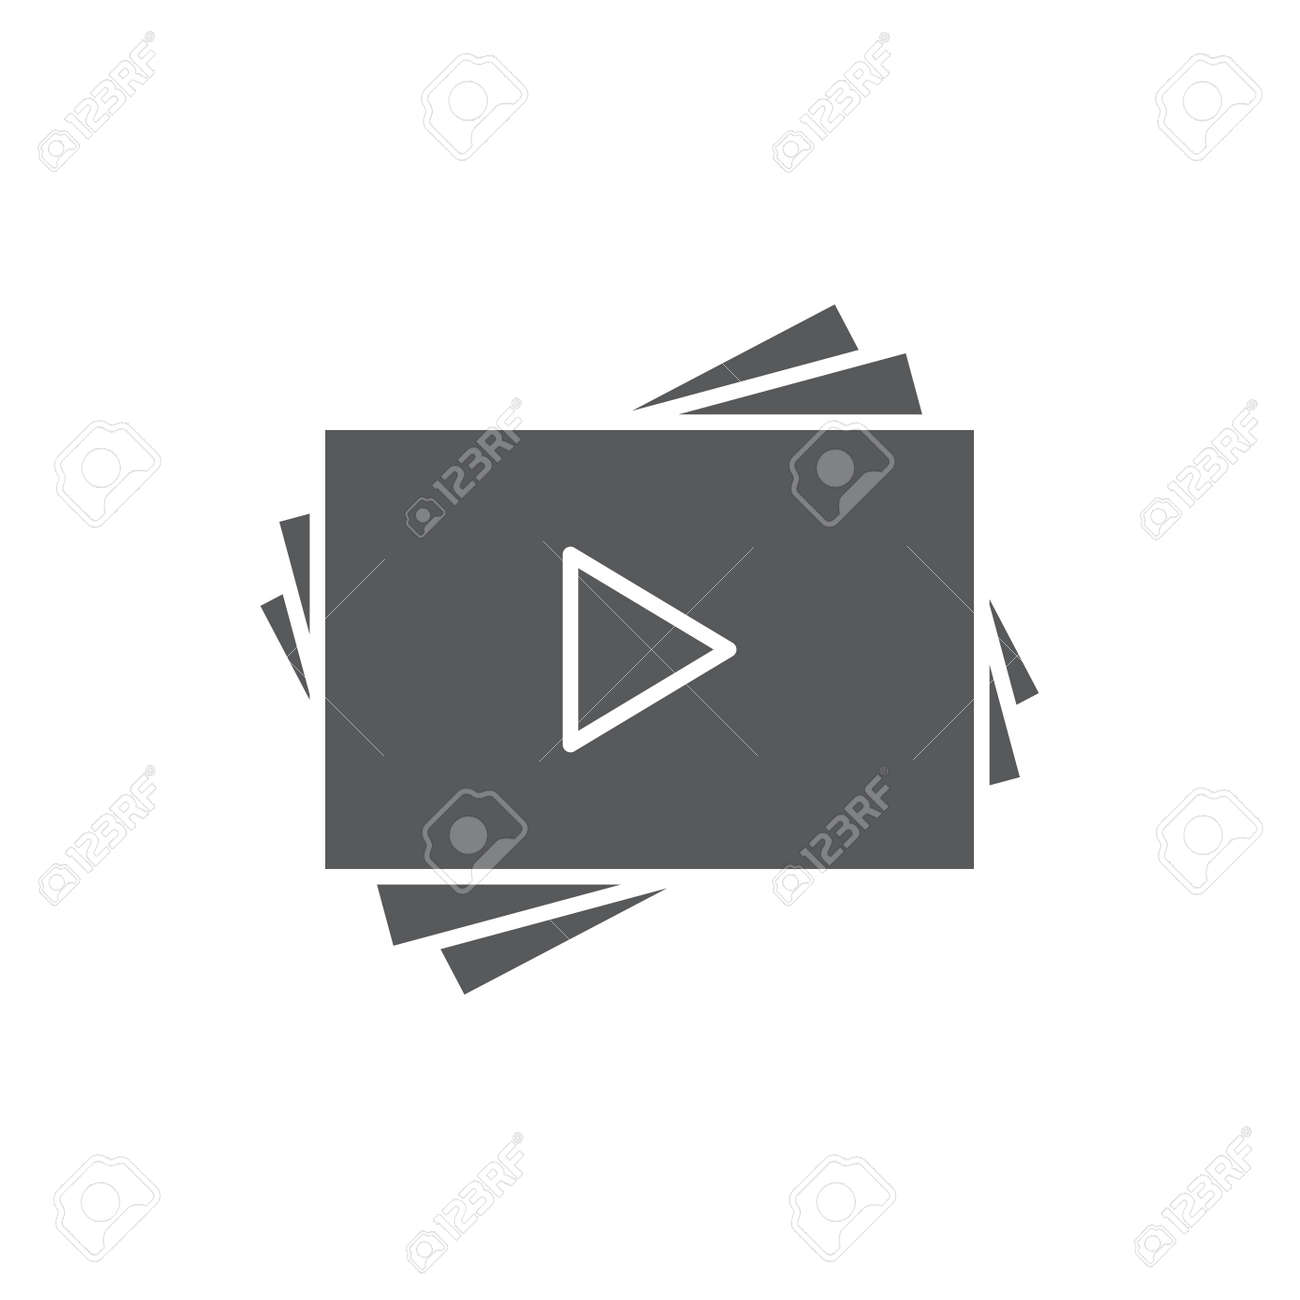 Video play list vector icon symbol favorite isolated on white background - 157125121